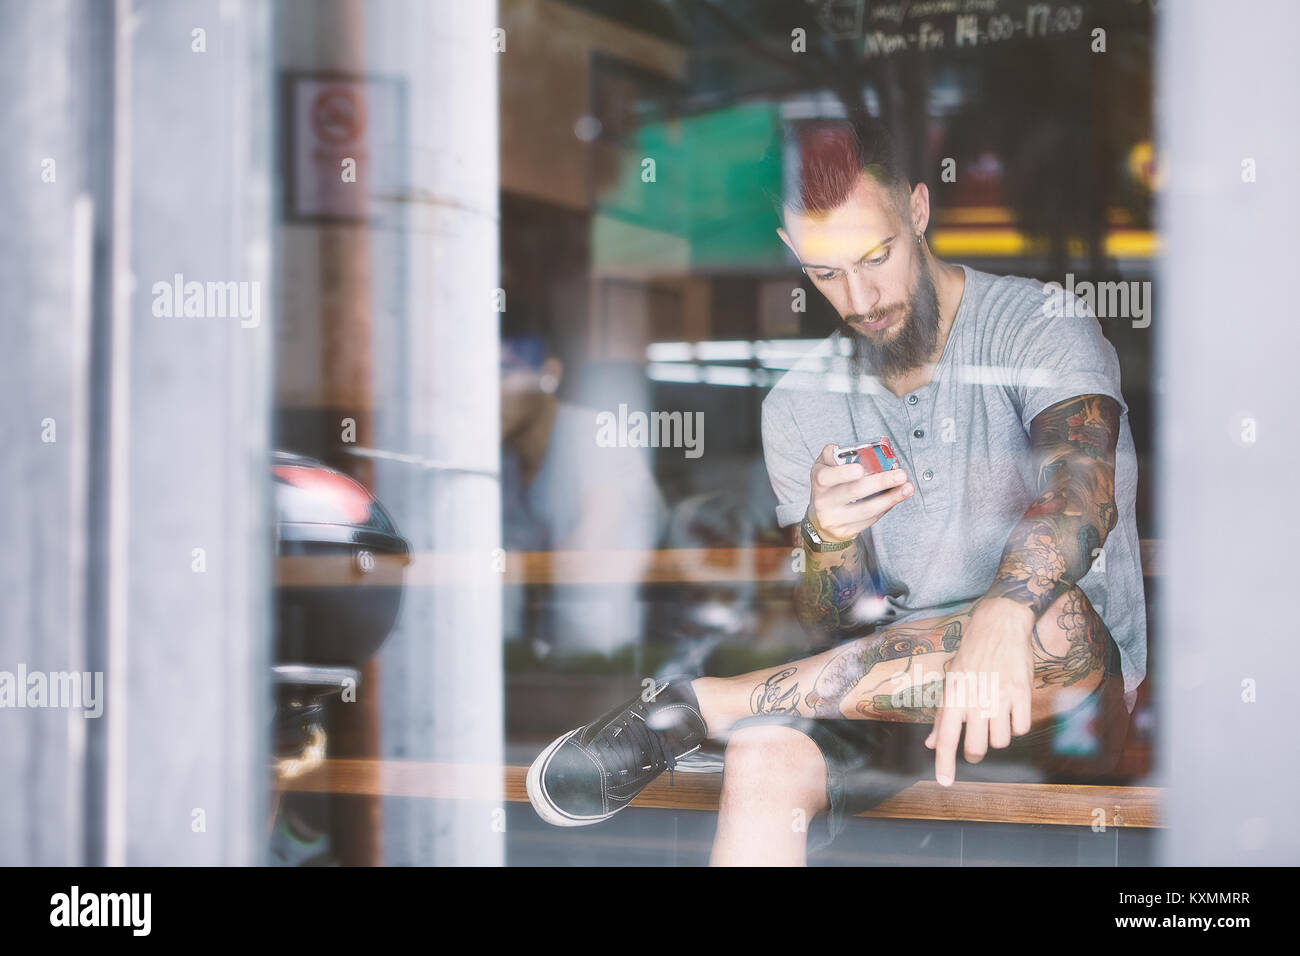 Young male hipster in cafe window seat looking at smartphone,Shanghai French Concession,Shanghai,China - Stock Image